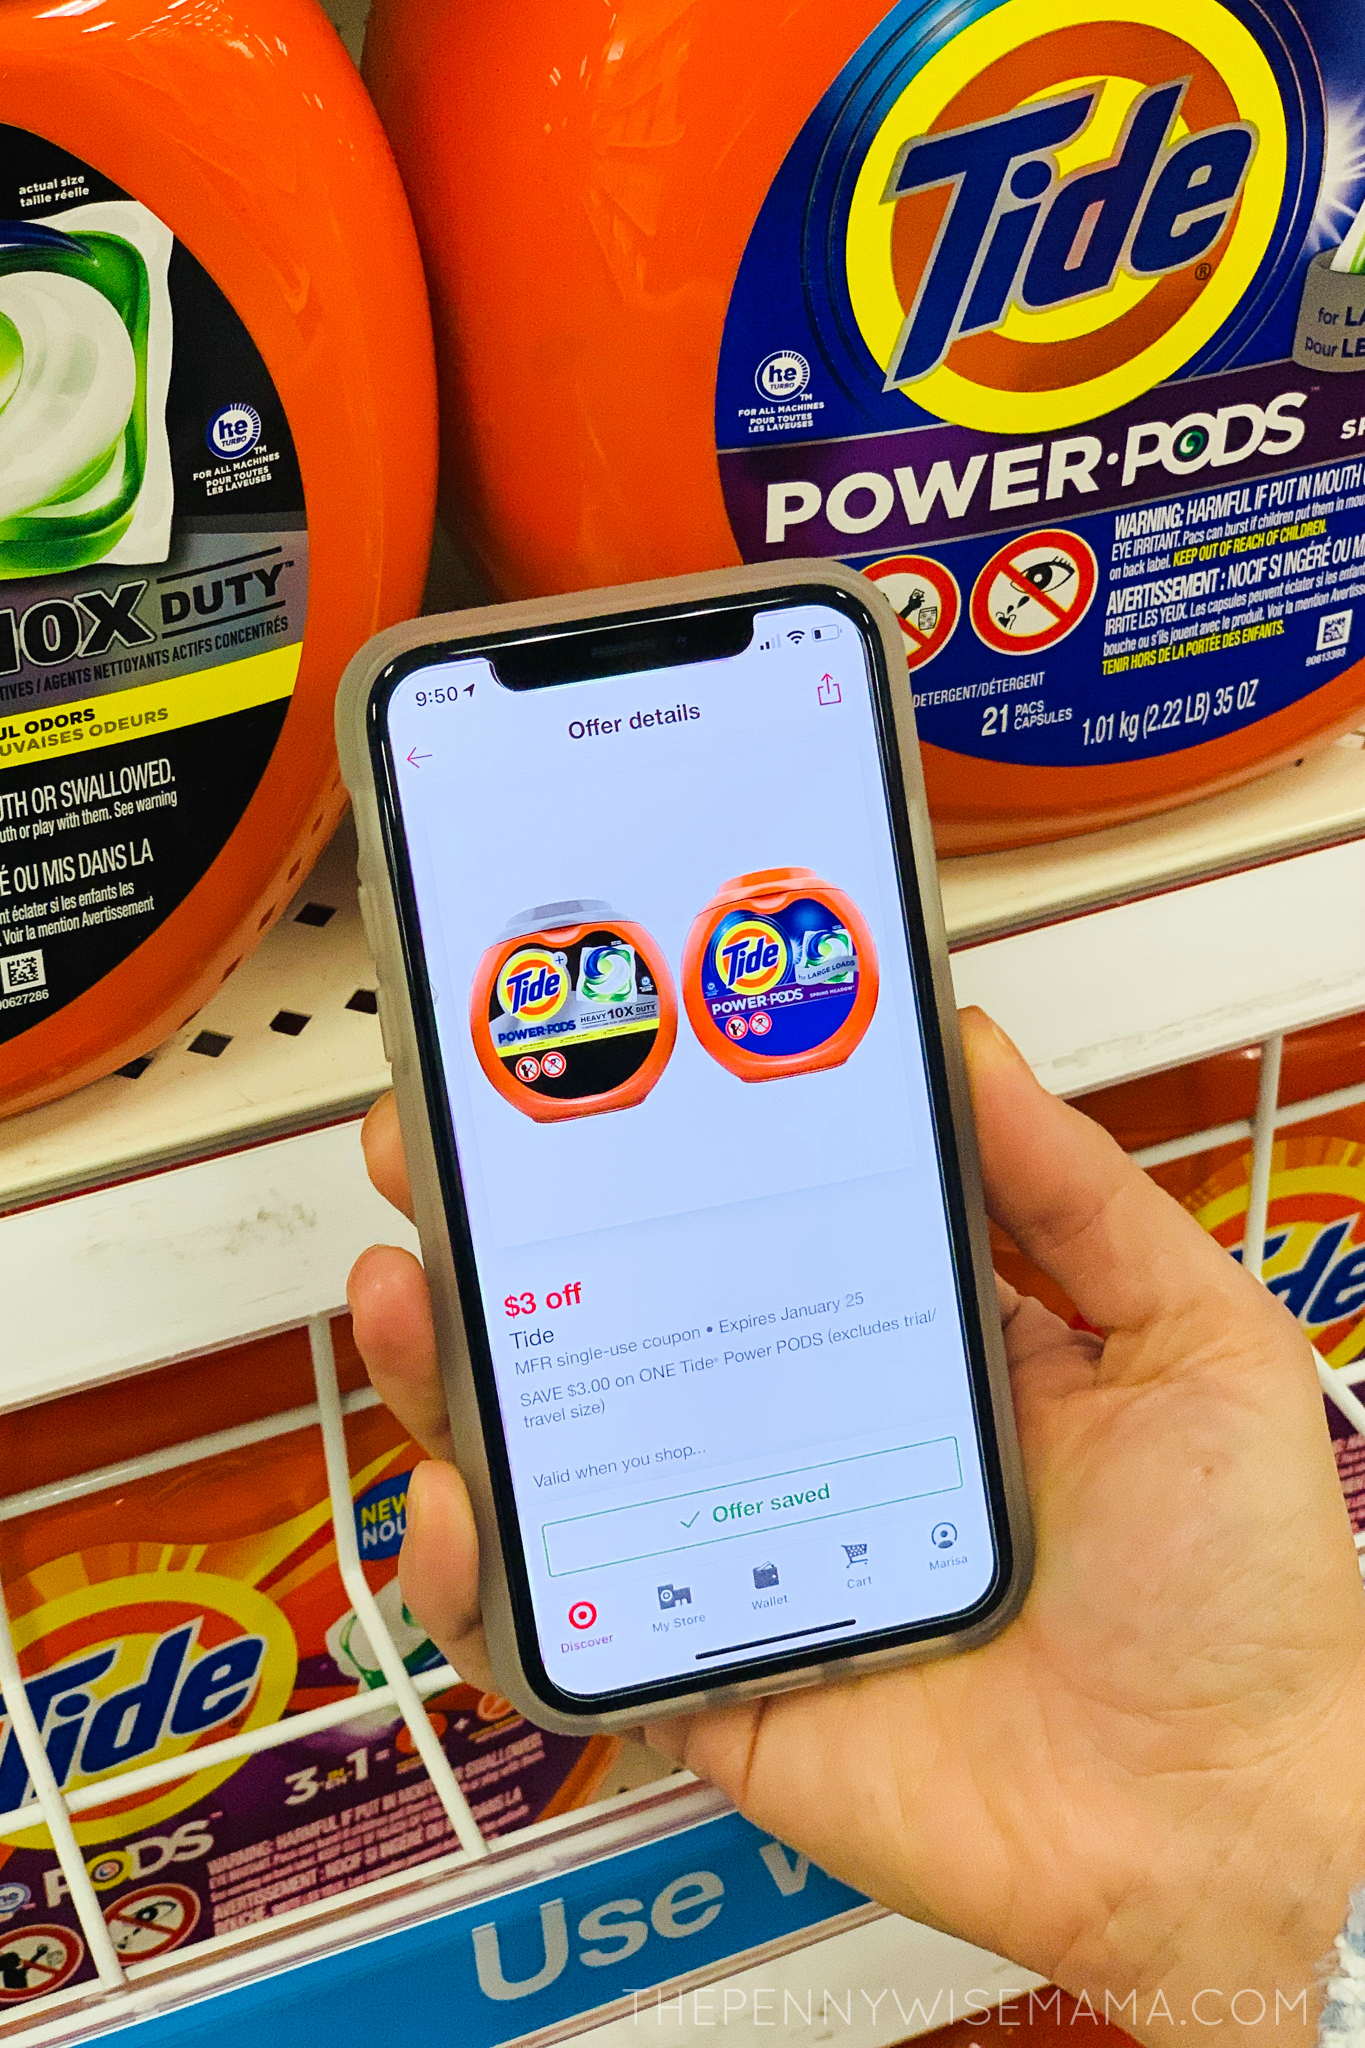 Save $3 on New Tide Power PODS at Target